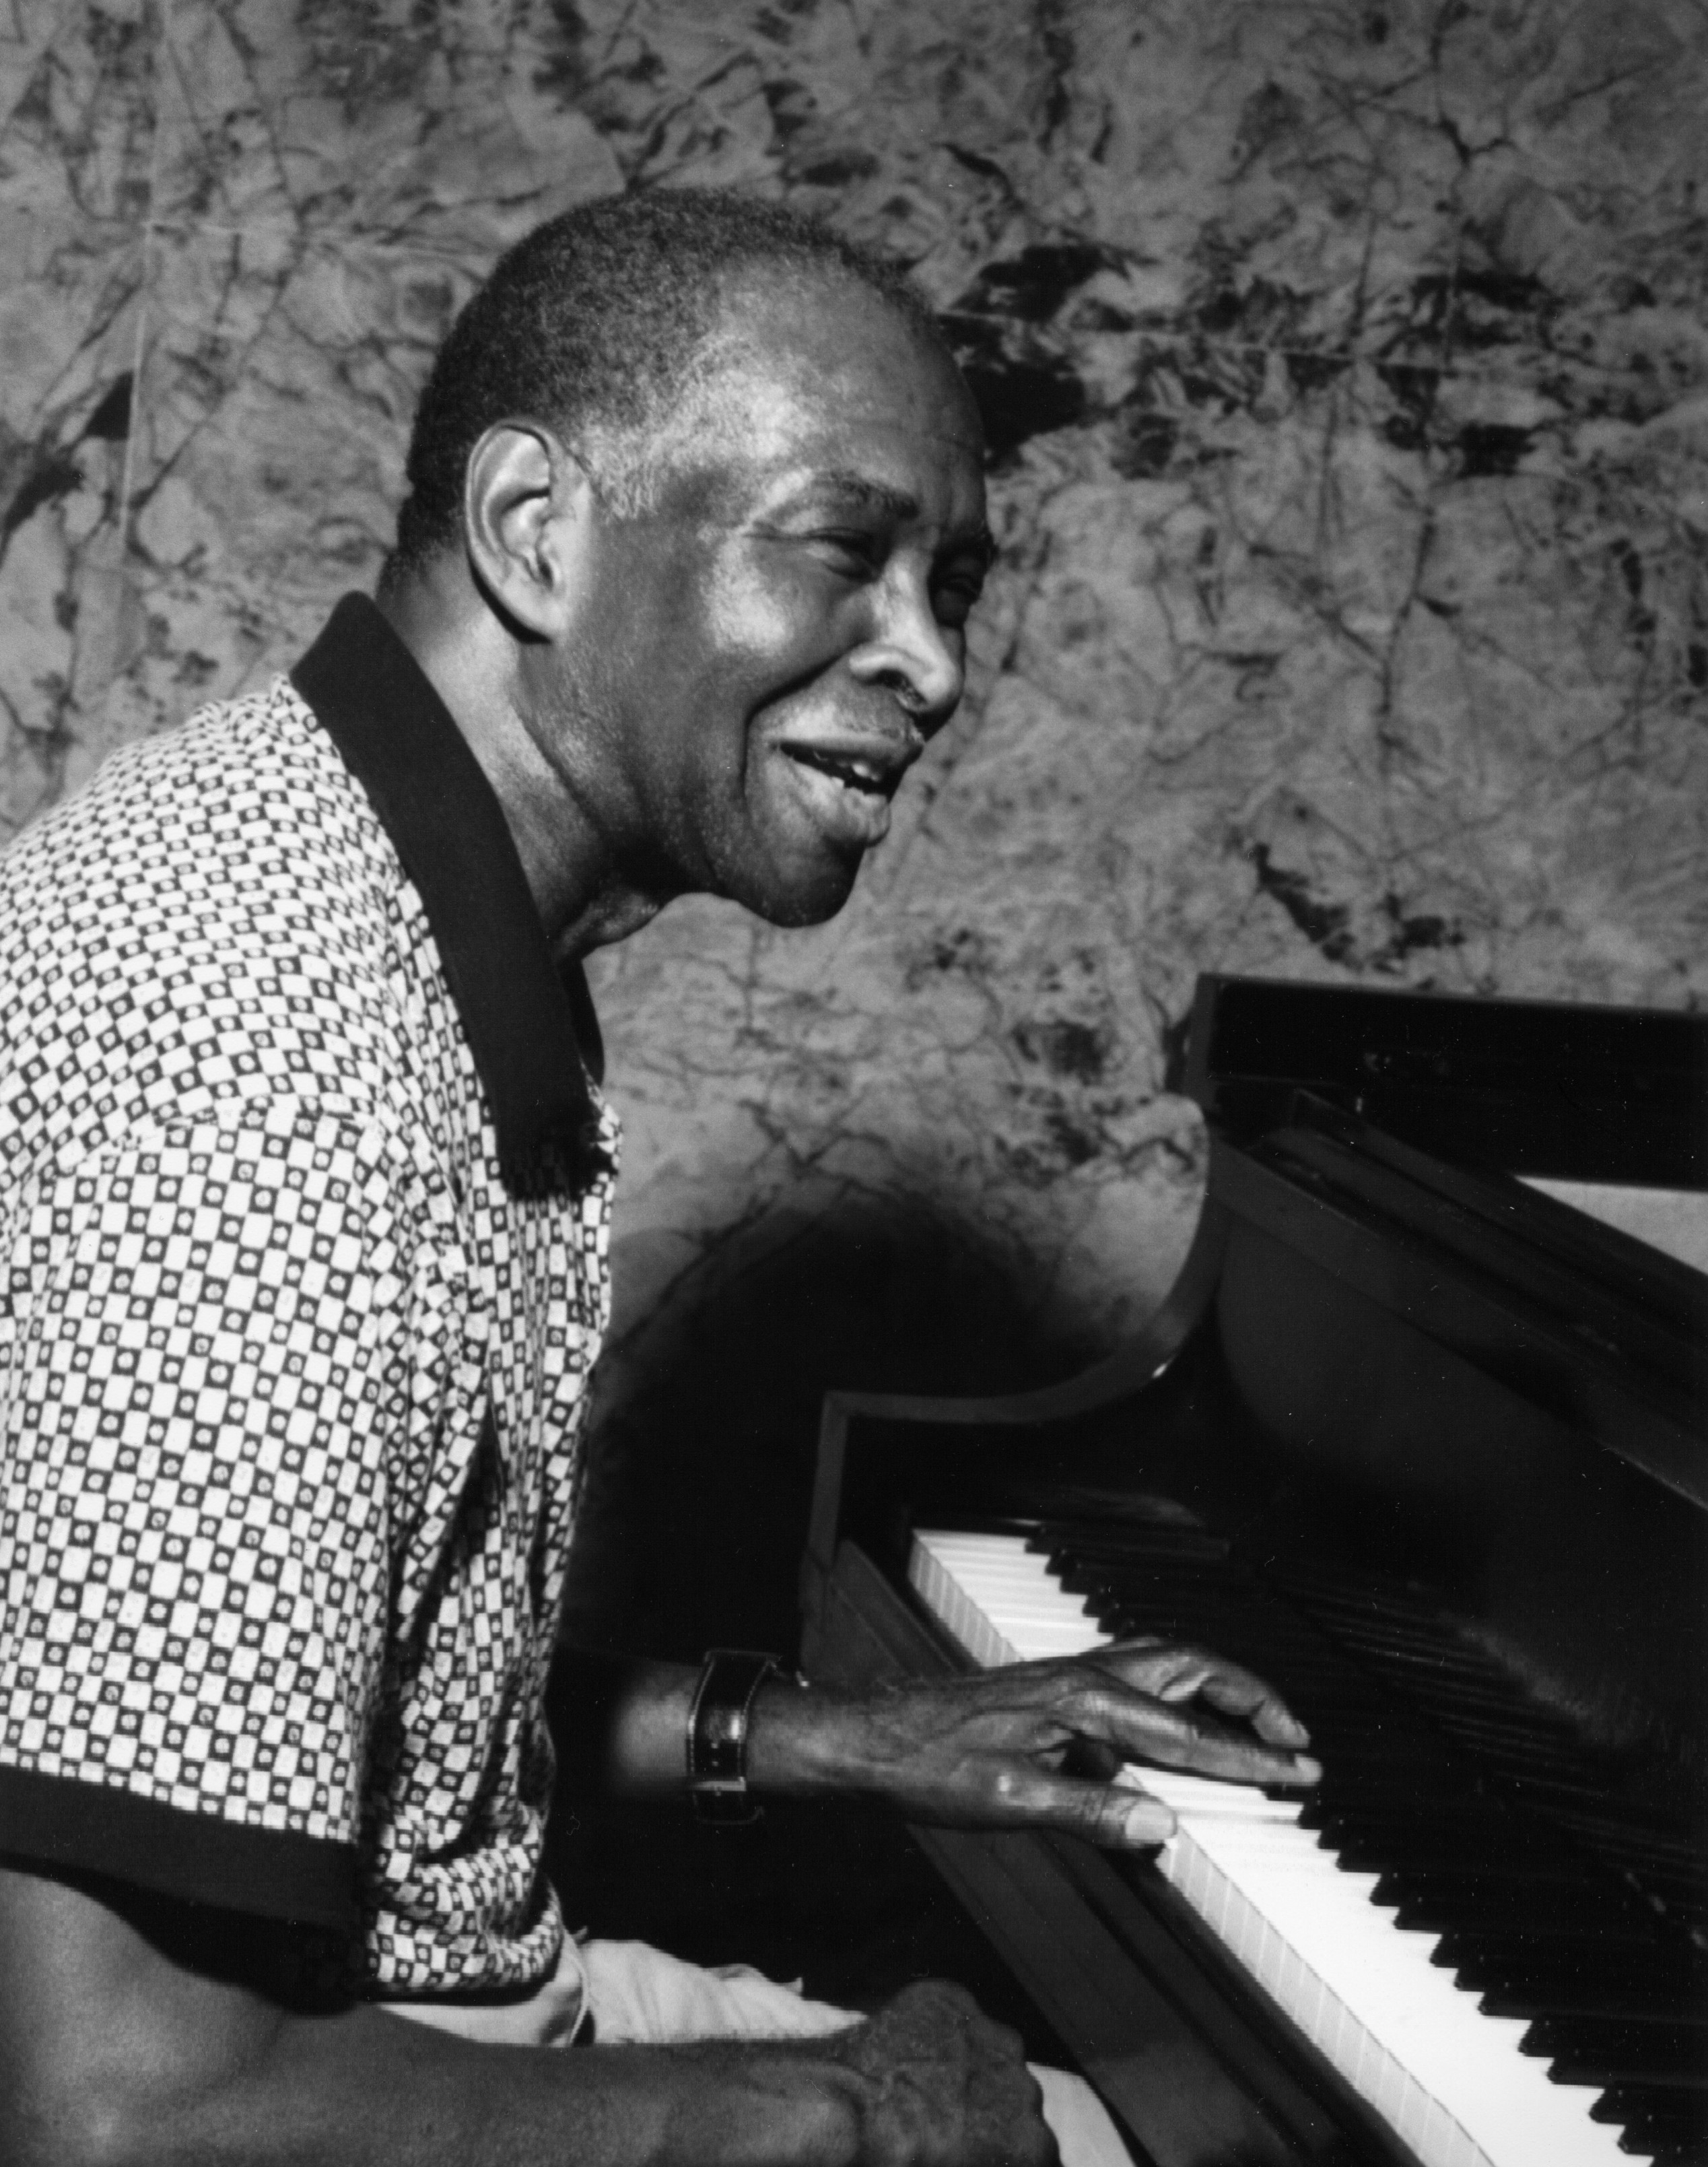 Influential pianist, composer, and AACM cofounder Muhal Richard ...